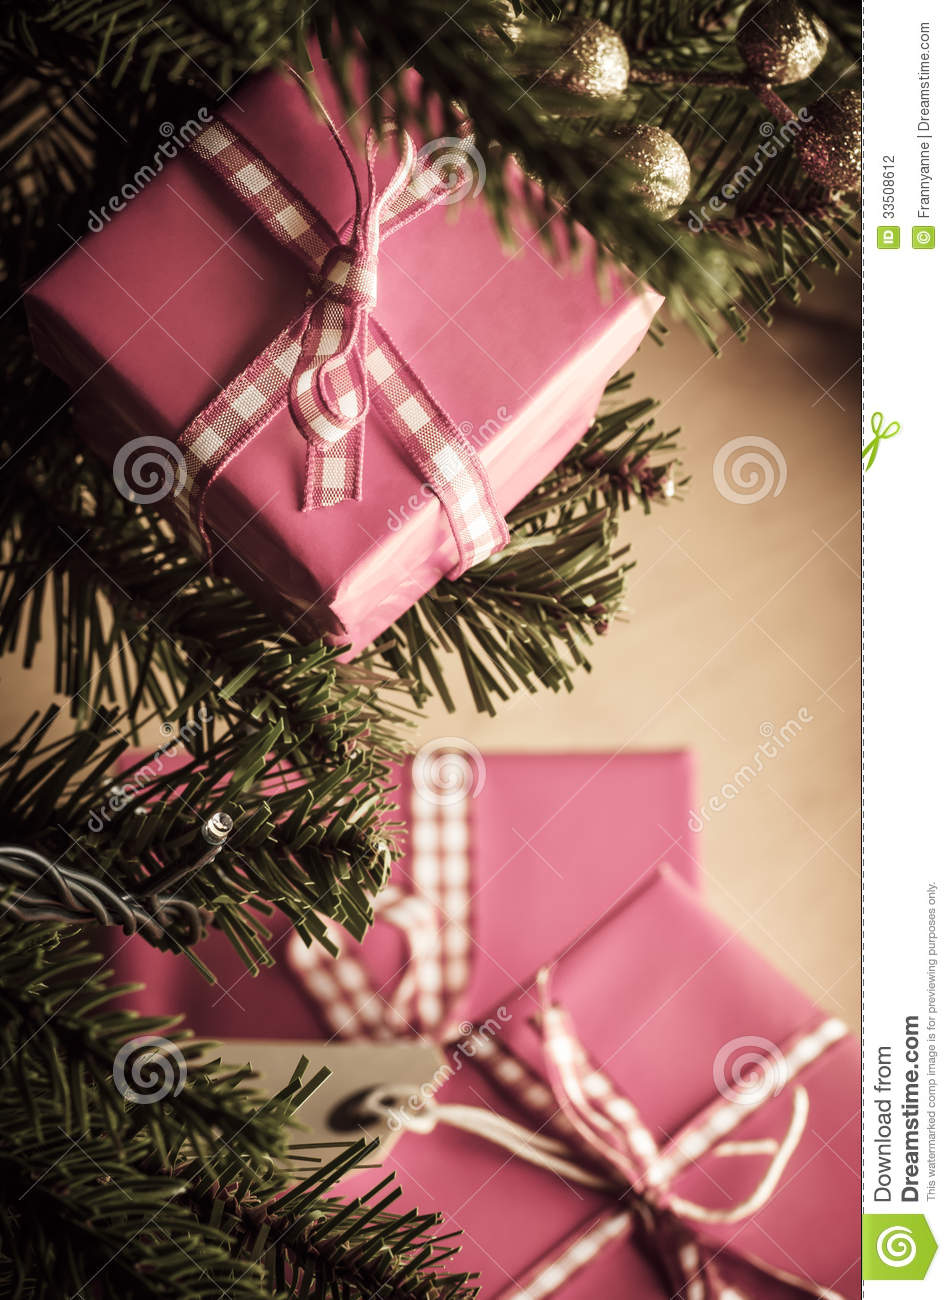 Good Pink Christmas Gifts Part   1  Christmas Gifts In Pink Wrapping Stock  PhotographyPink Christmas Gifts   Home Decorating  Interior Design  Bath  . Good Christmas Gifts For The Kitchen. Home Design Ideas